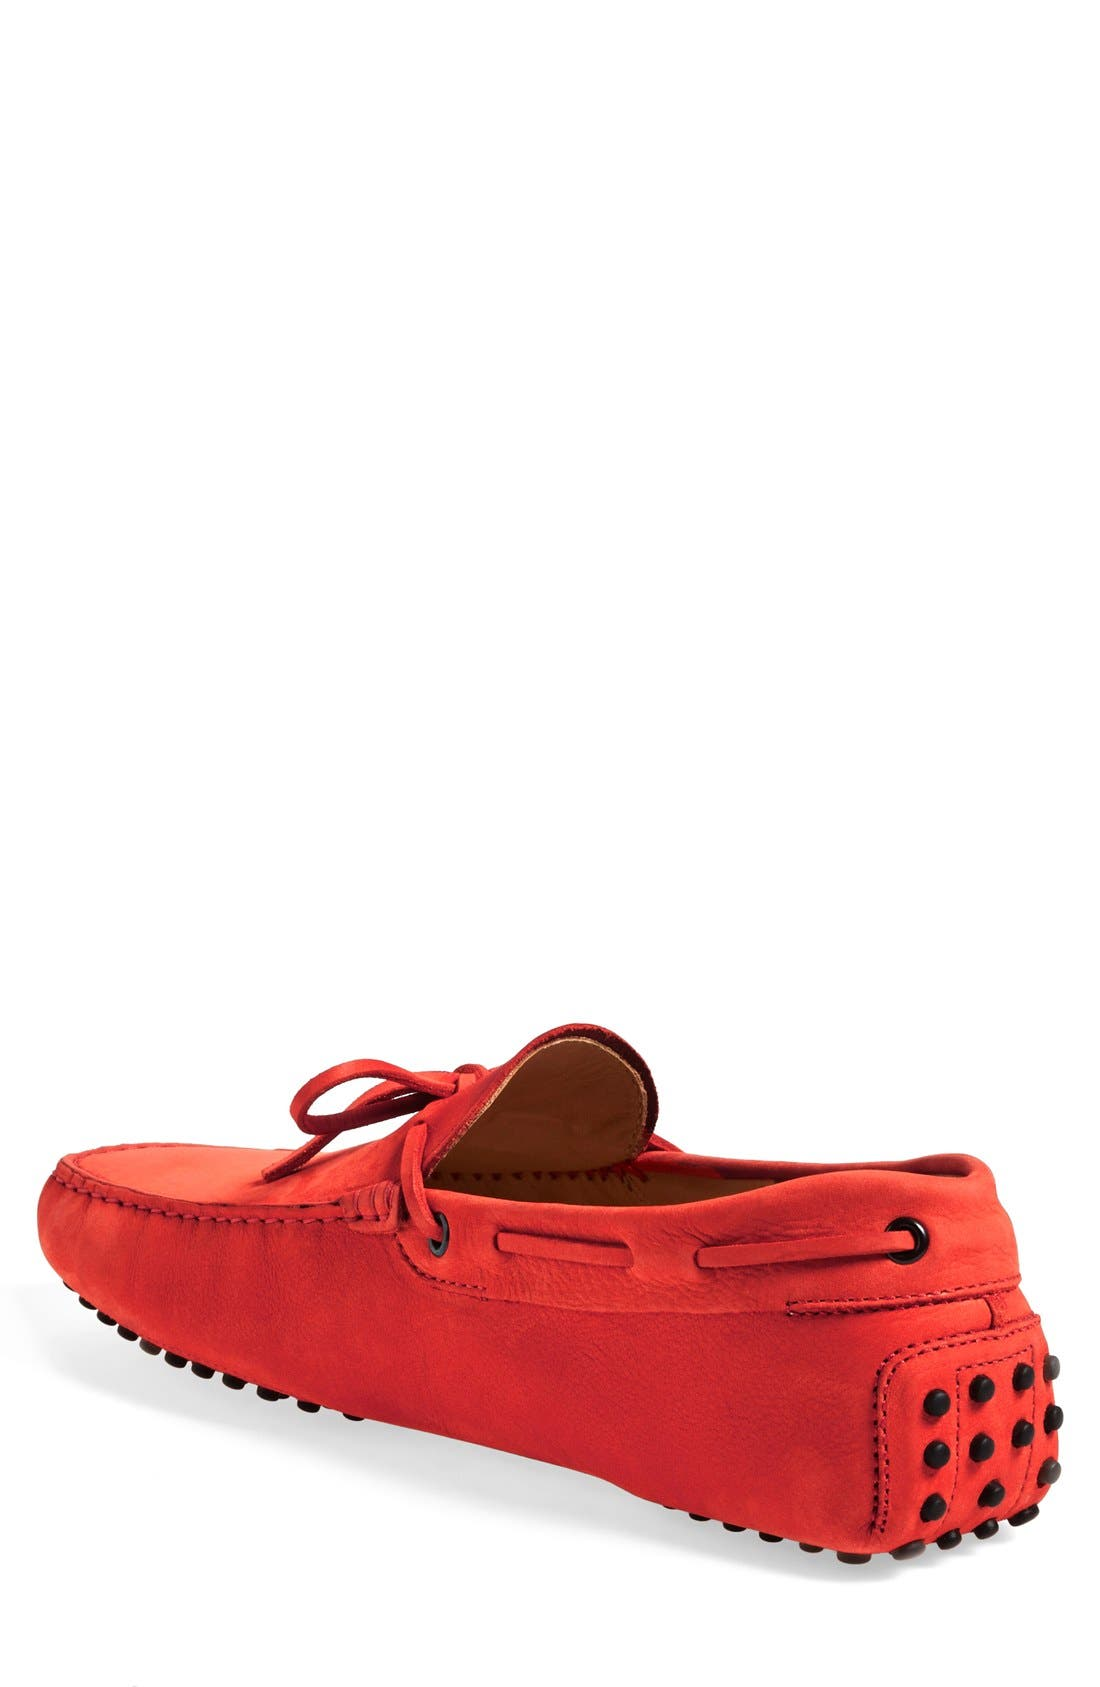 Gommini Tie Front Driving Moccasin,                             Alternate thumbnail 86, color,